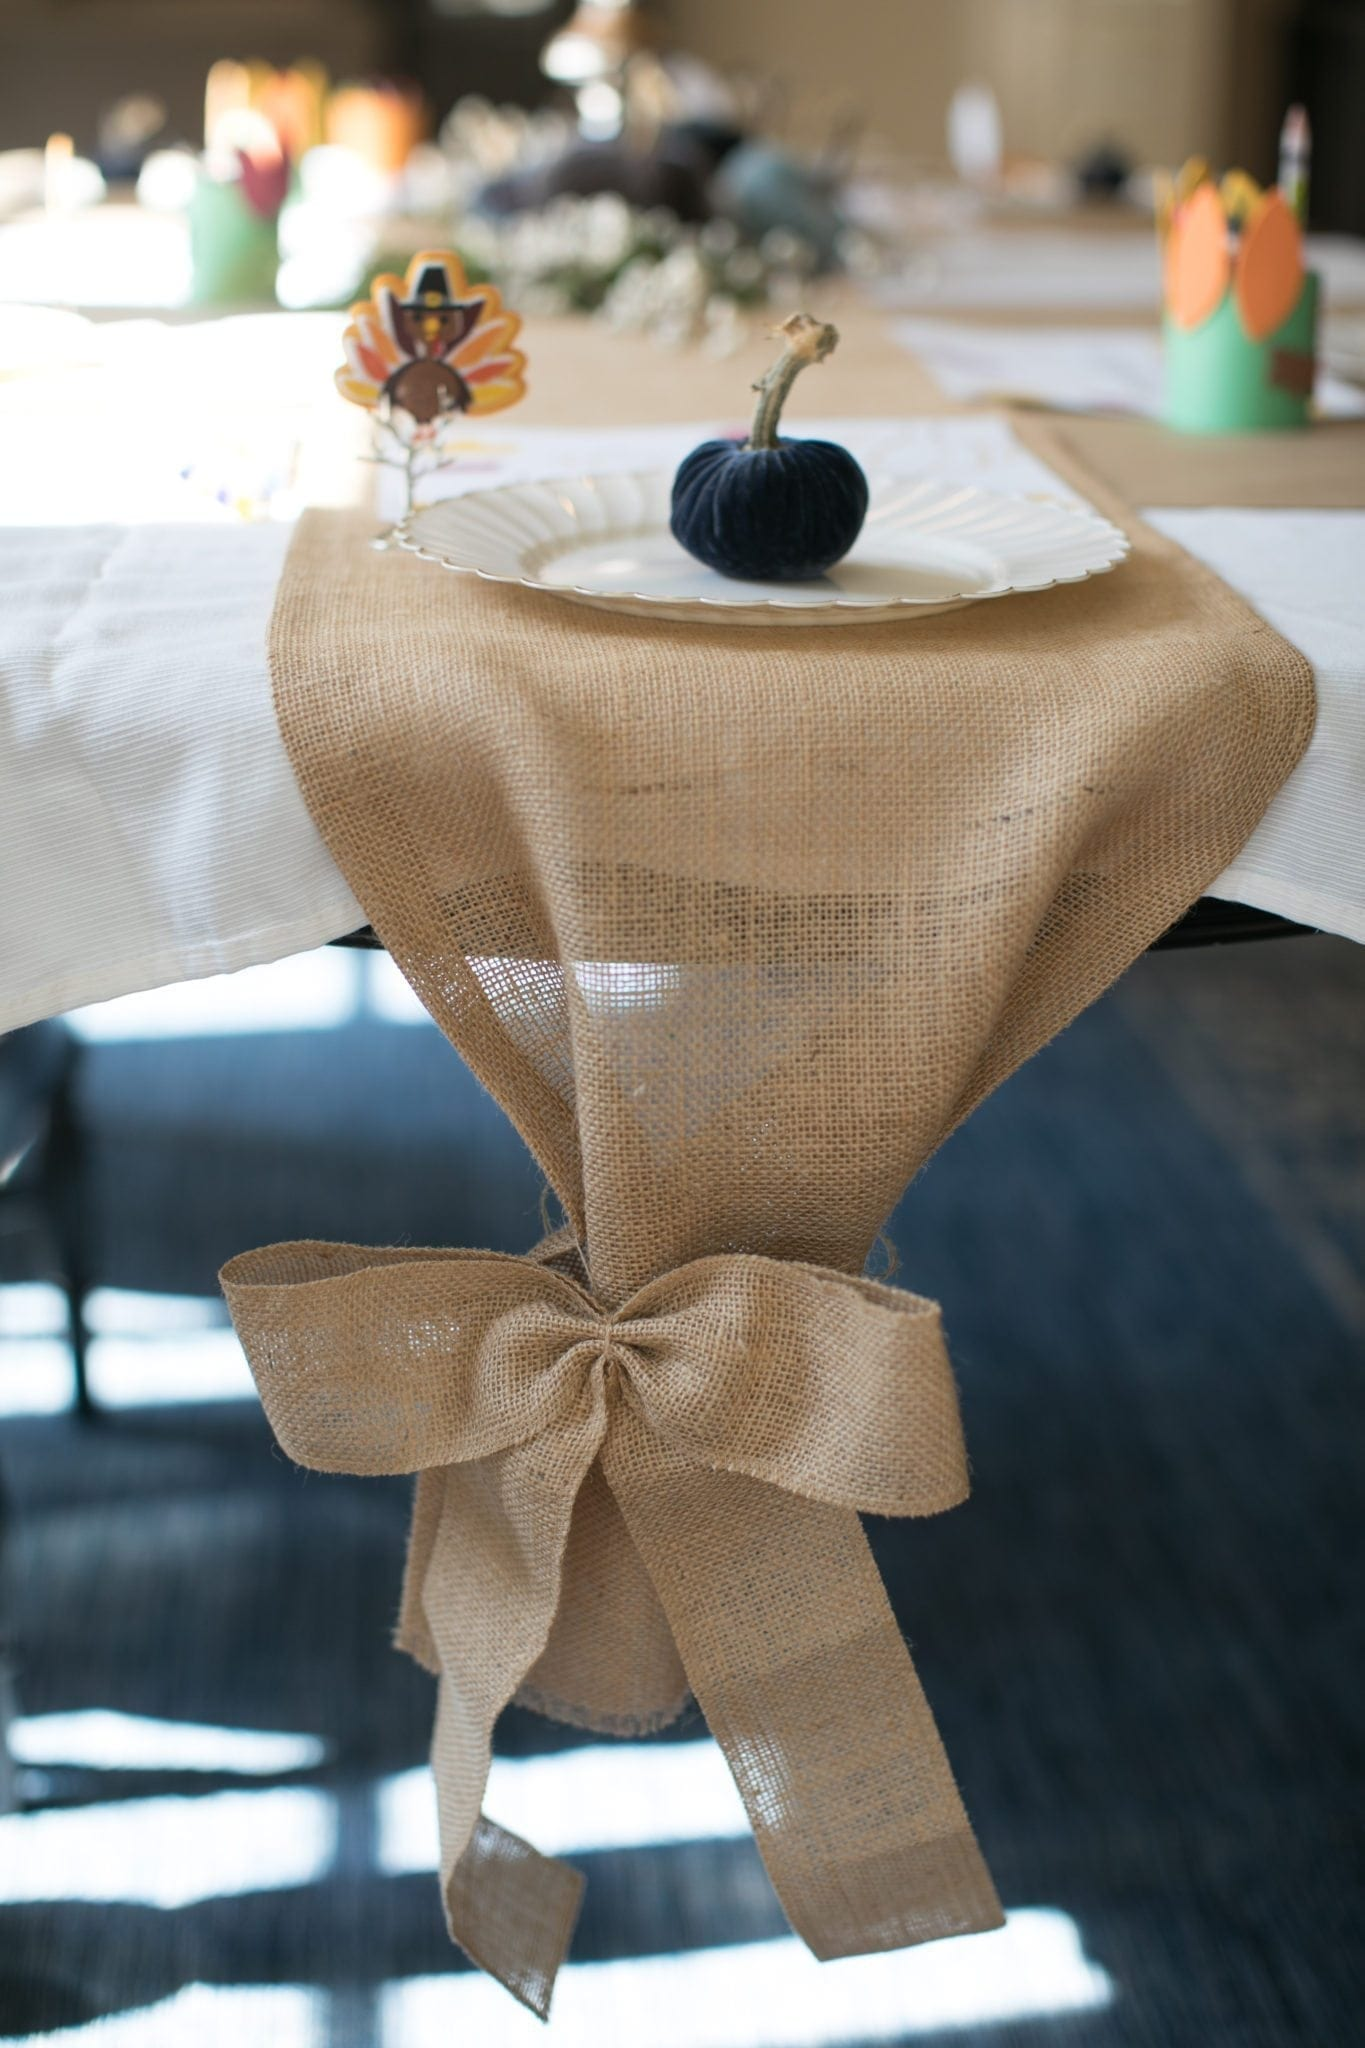 Kids thanksgiving table with burlap bow and pumpkin placesetting.